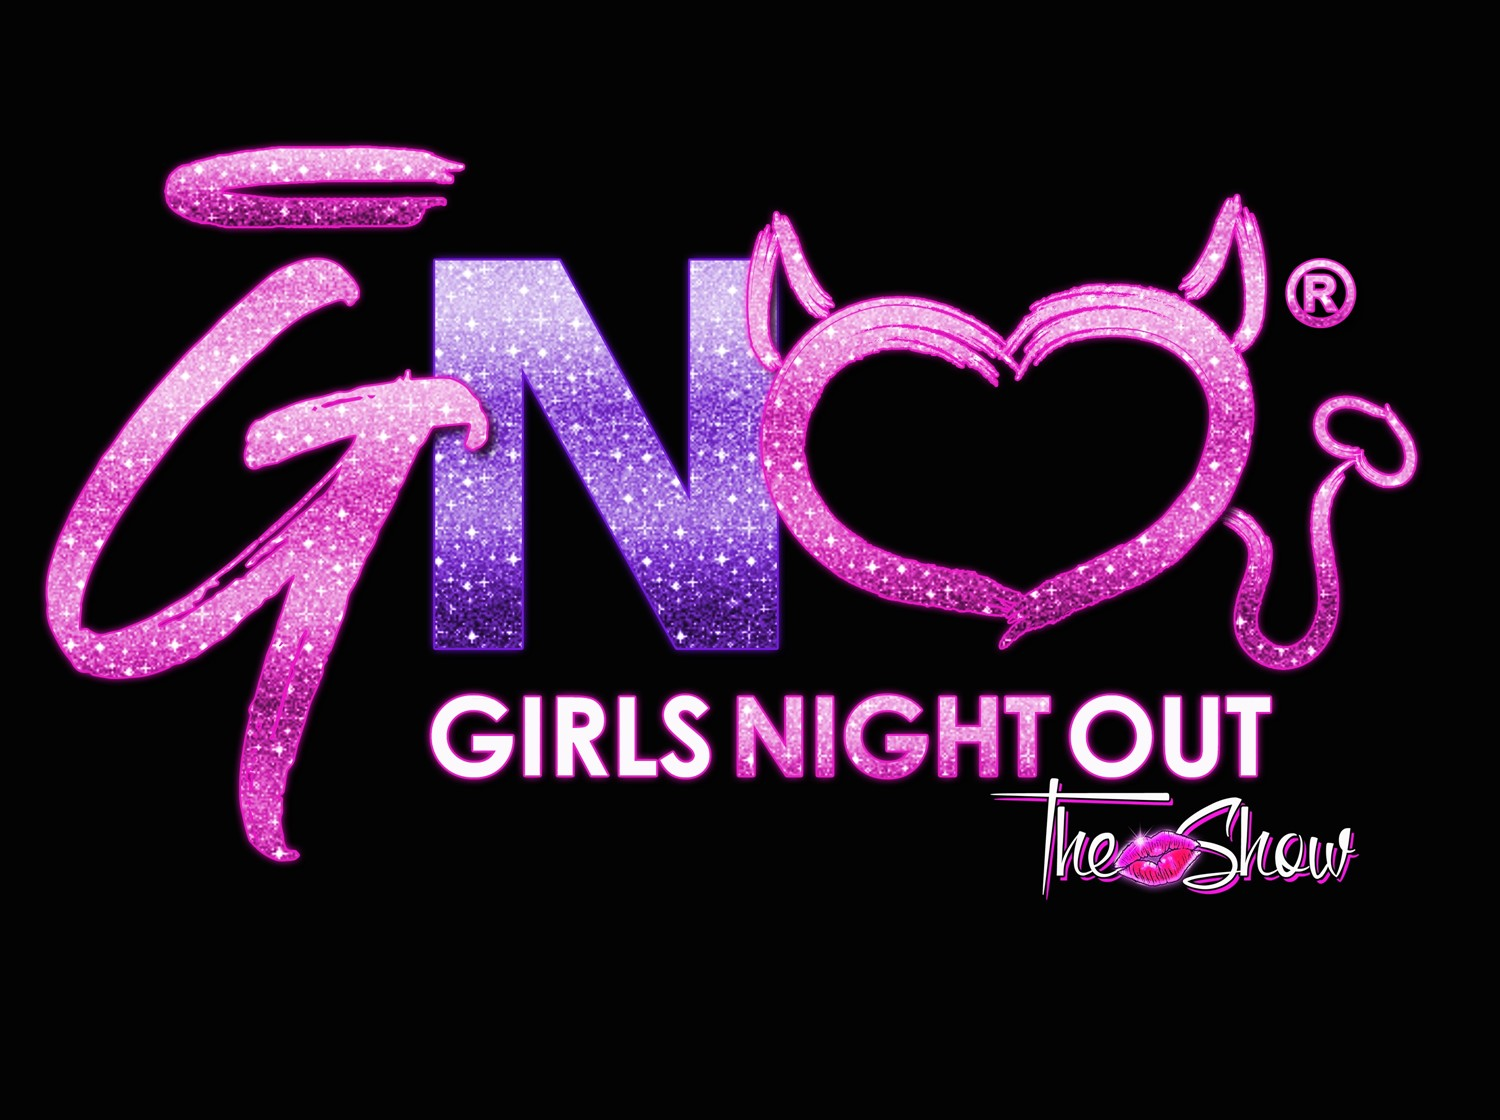 Hobart Art Theatre (18+) Hobart, IN on may. 14, 20:00@Hobart Art Theatre - Buy tickets and Get information on Girls Night Out the Show tickets.girlsnightouttheshow.com